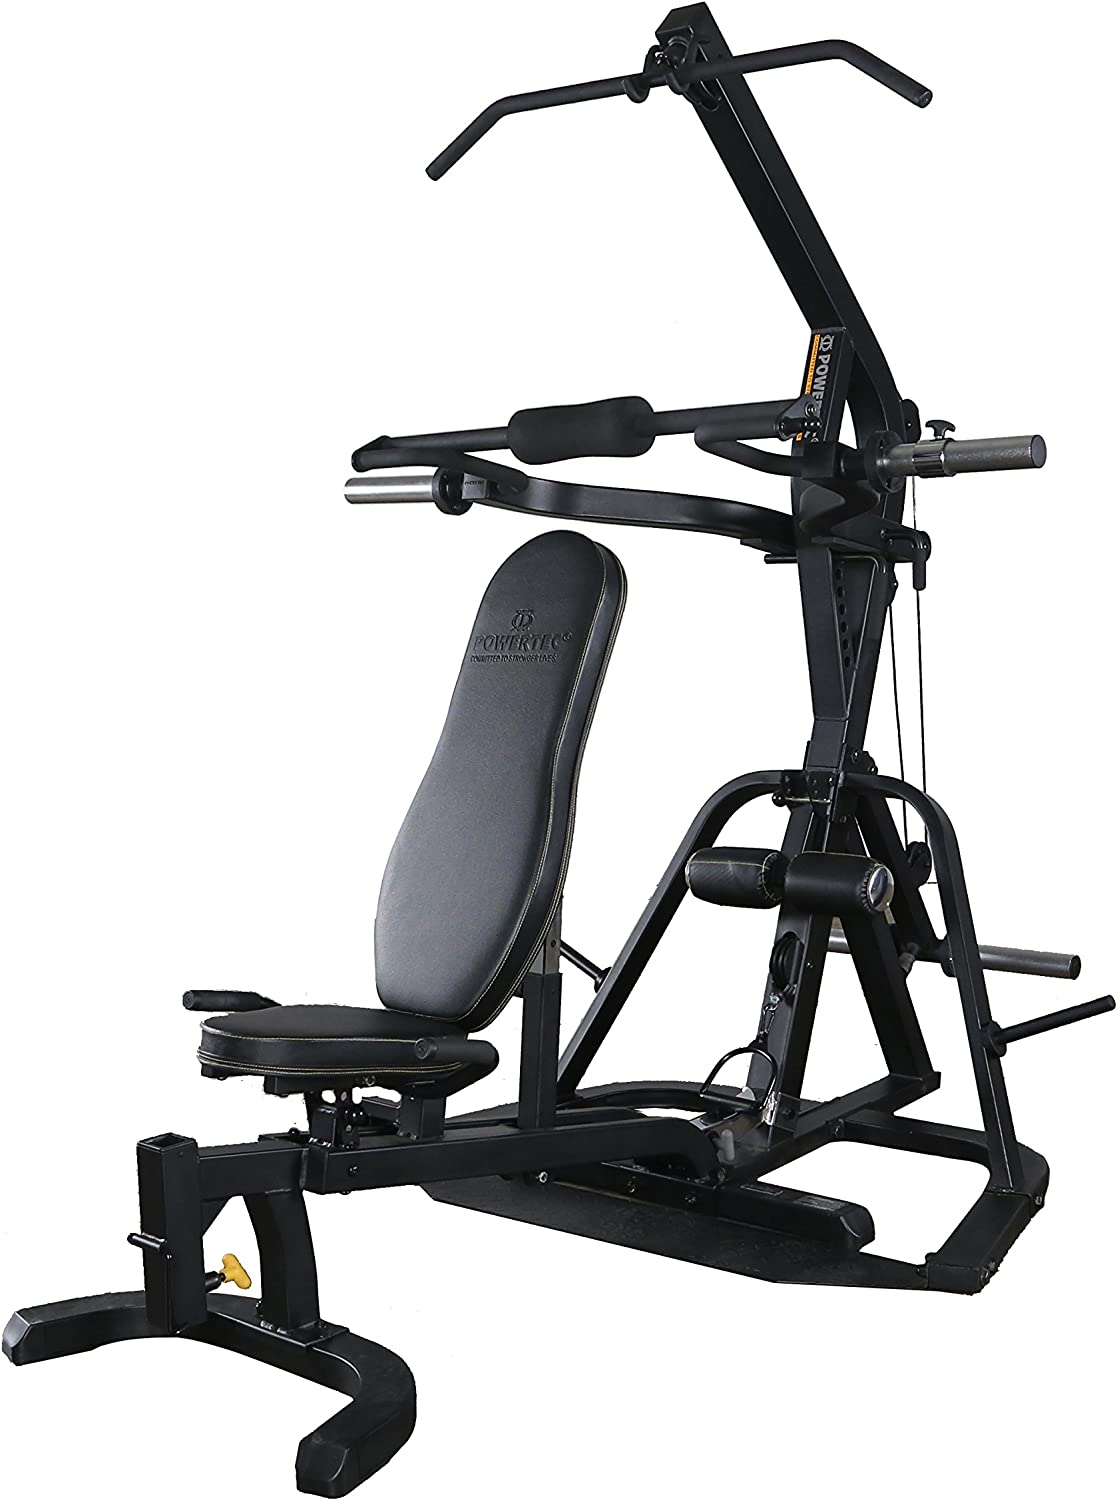 Powertec Fitness Lever